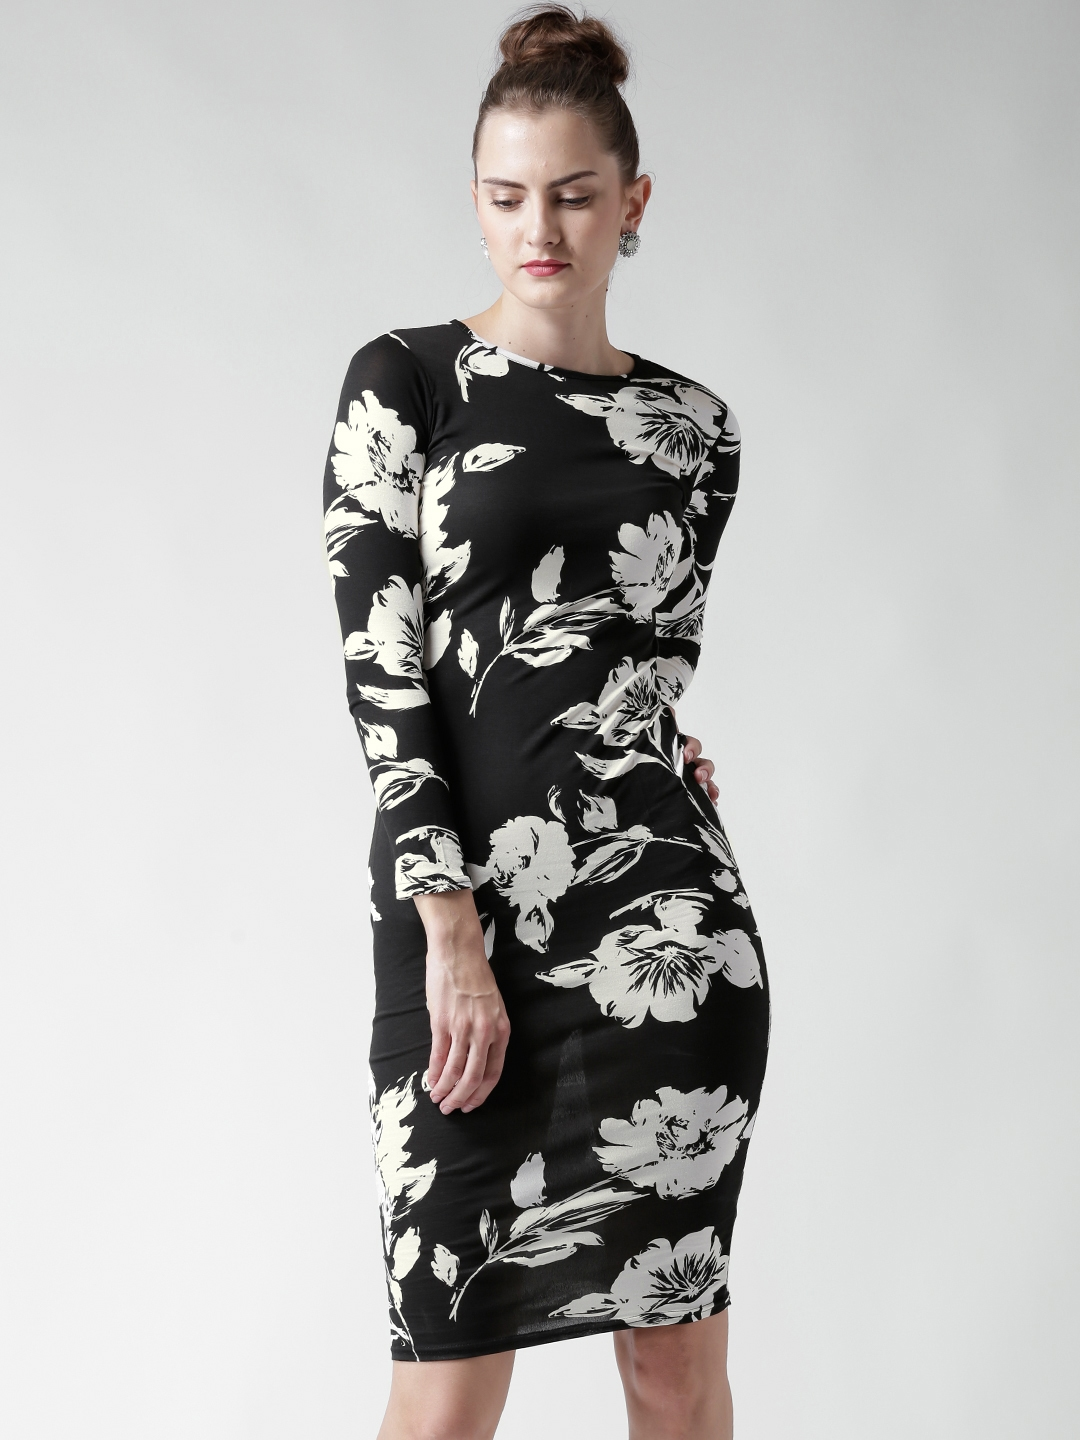 7902efc0686 Black And White Floral Print Dresses